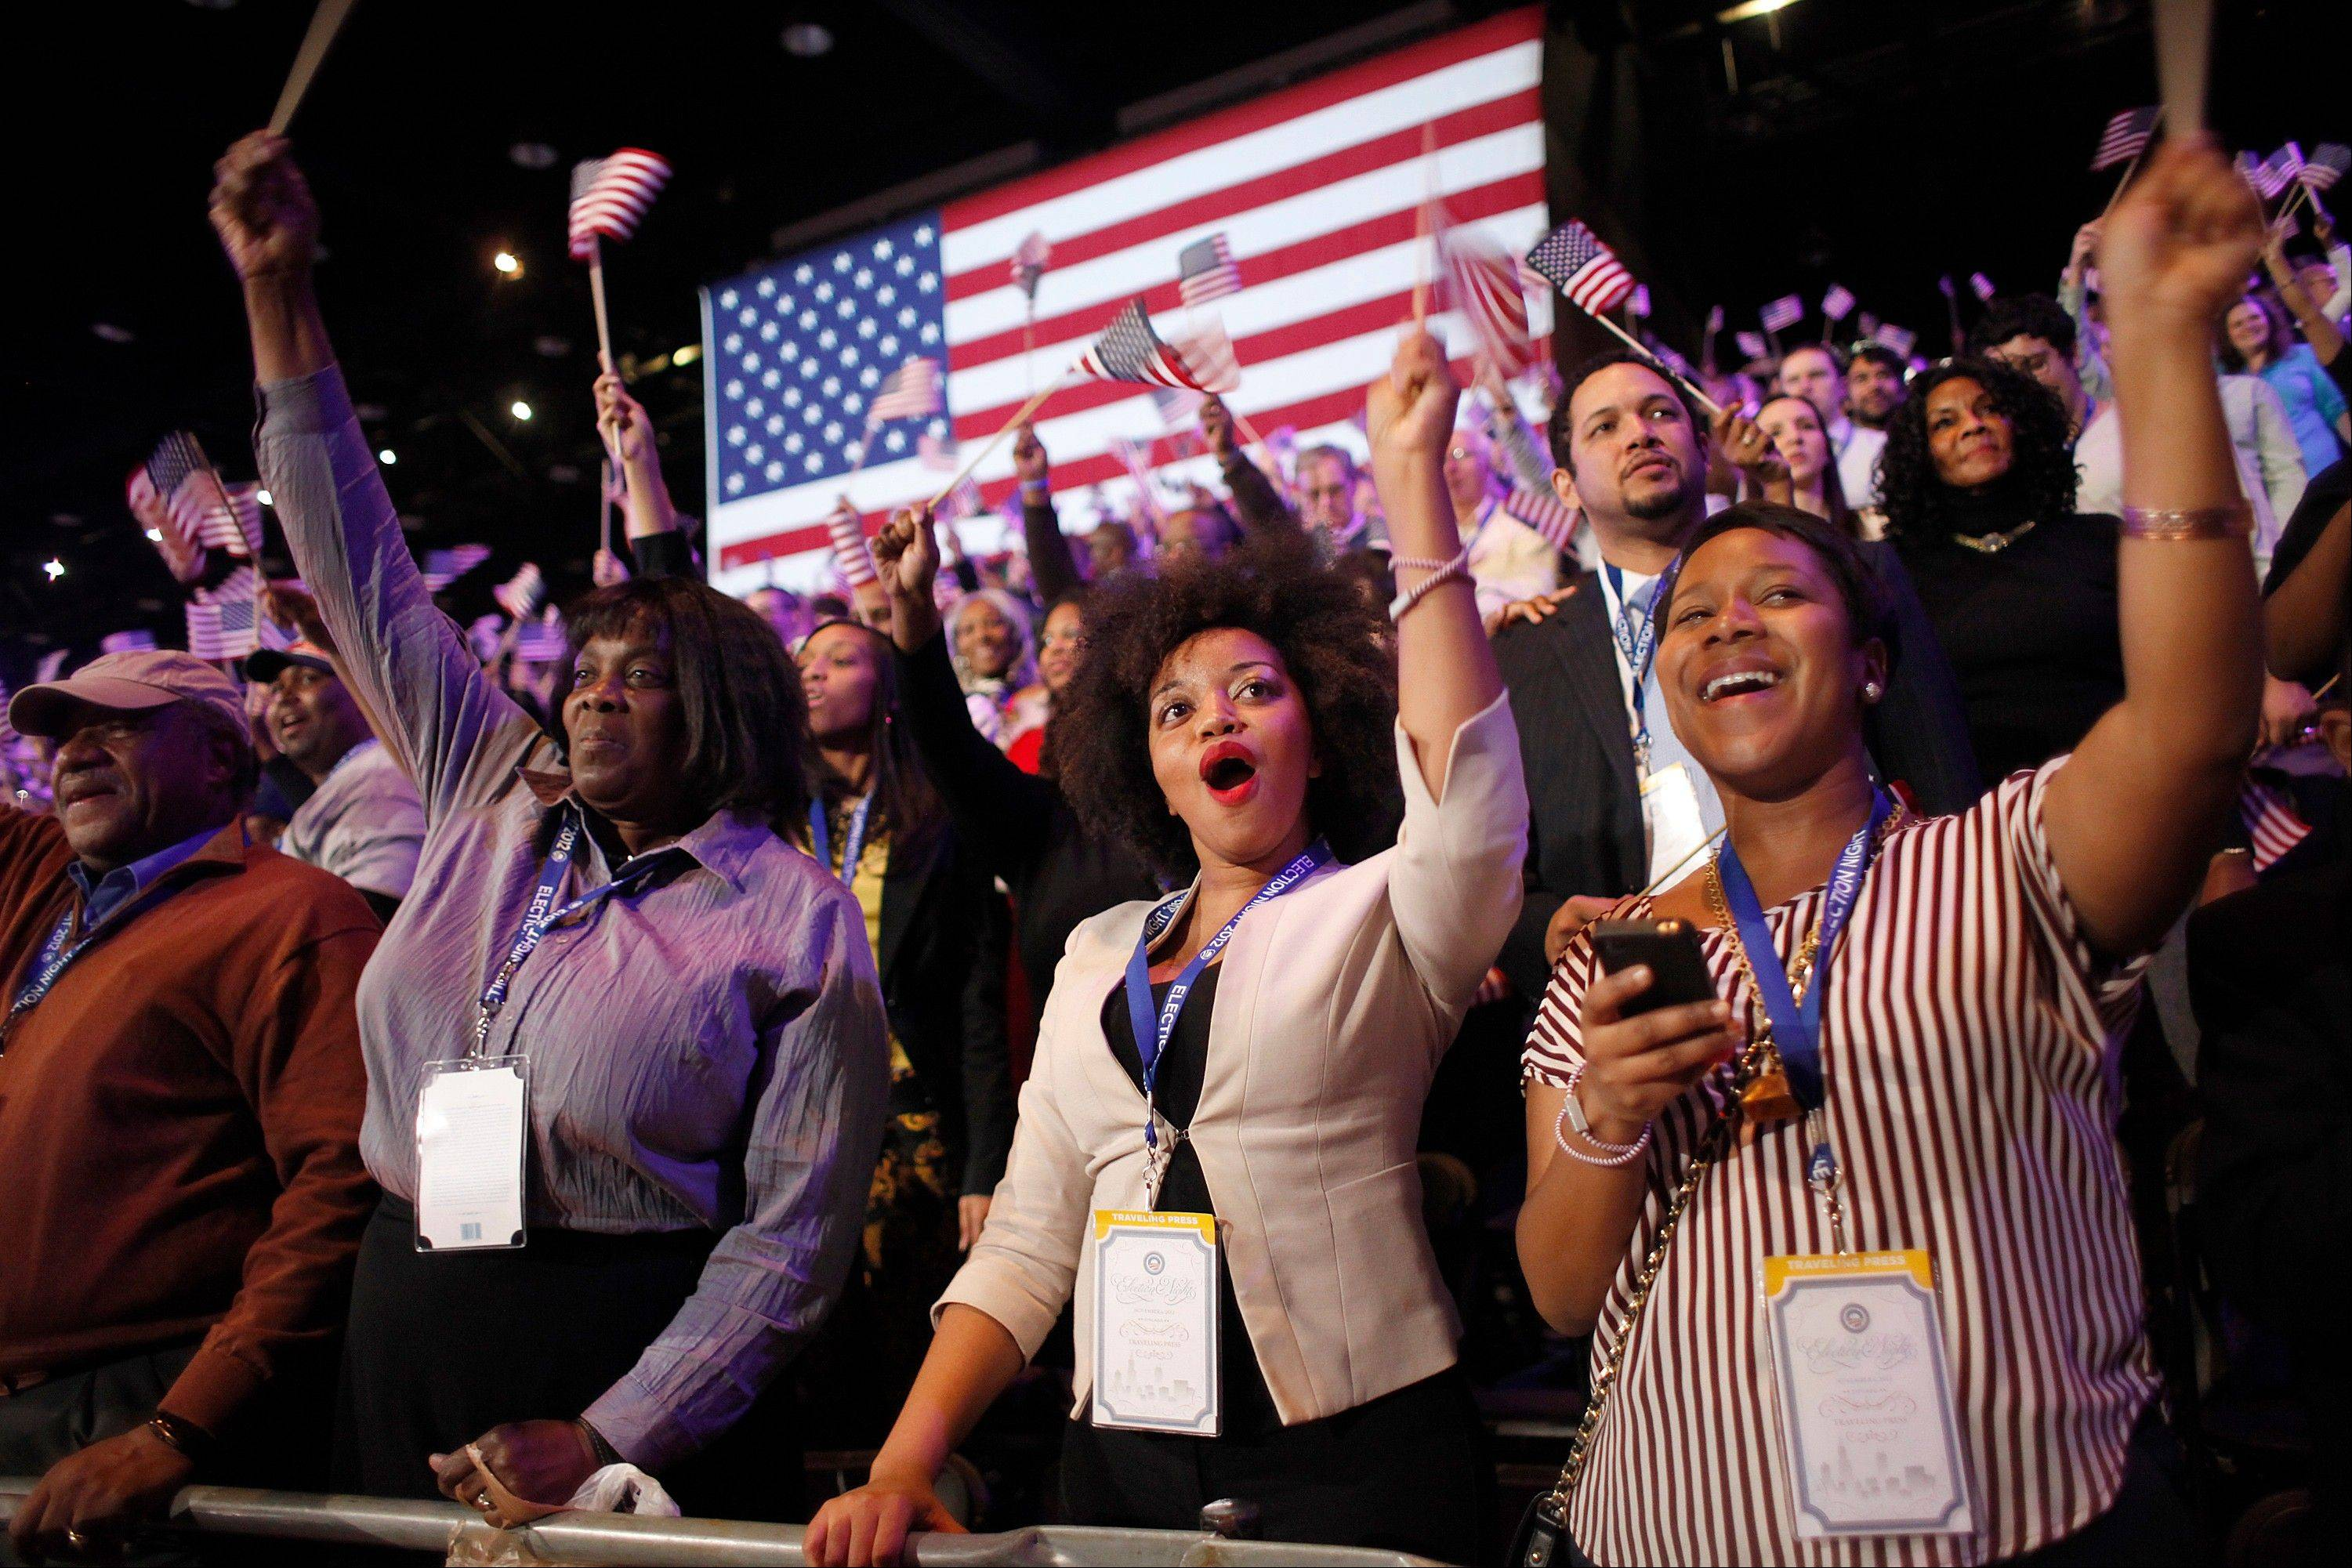 Supporters of President Barack Obama react to favorable media projections at the McCormick Place during an election night watch party in Chicago on Tuesday, Nov. 6, 2012.